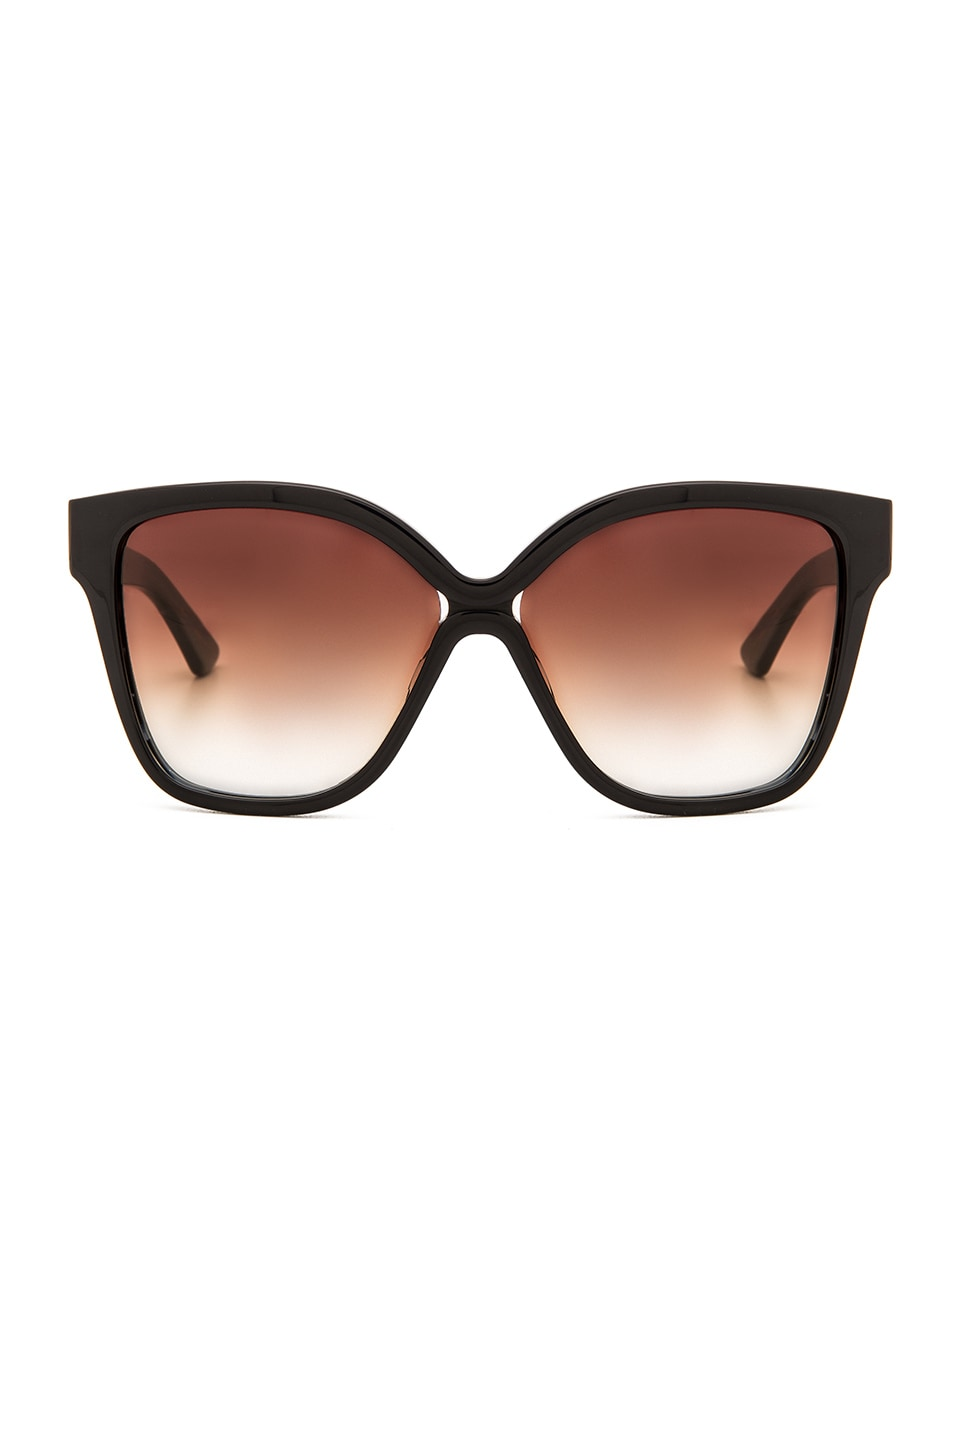 Dita Paradis Sunglasses in Navy & Dark Brown